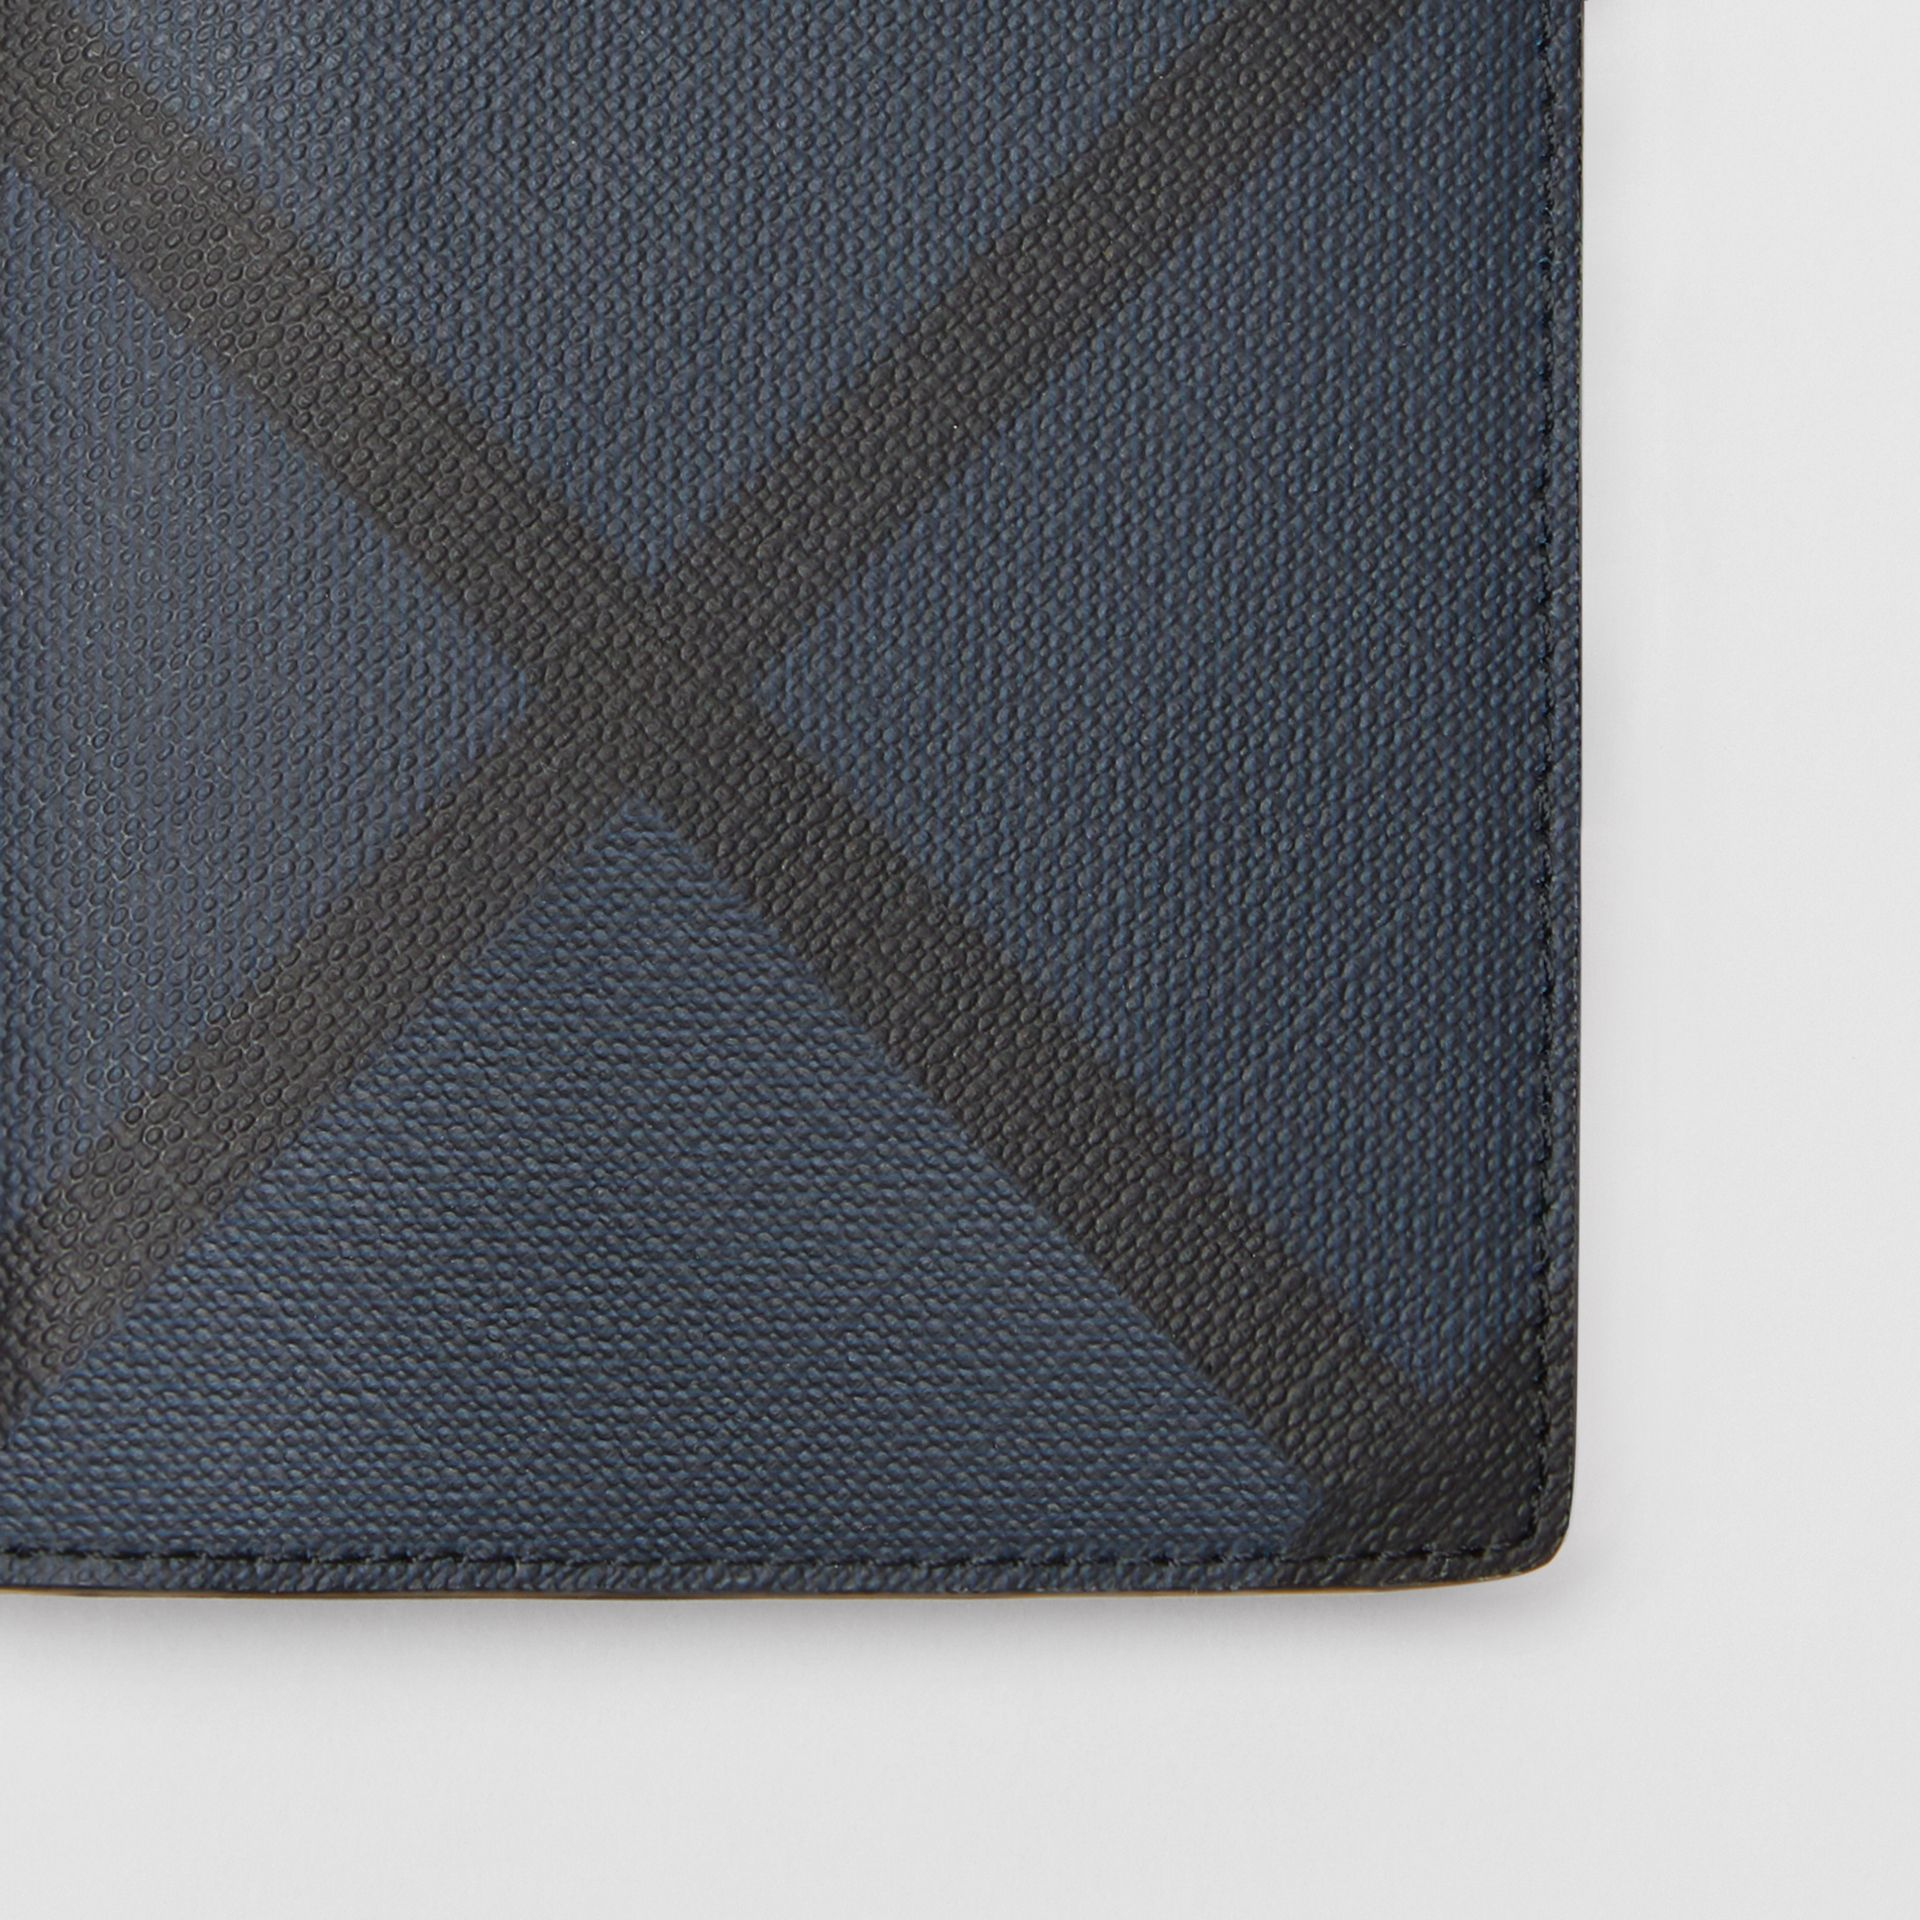 London Check and Leather Continental Wallet in Navy/black - Men | Burberry Canada - gallery image 1